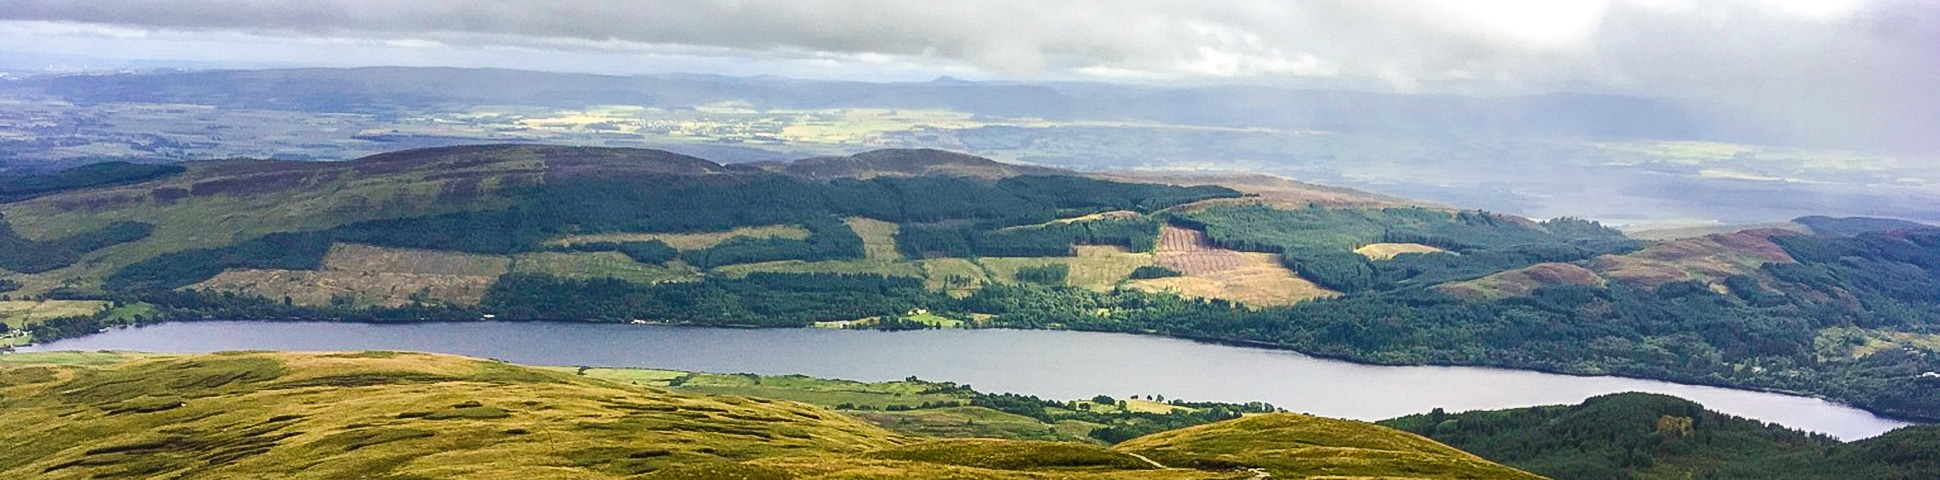 Panorama of Loch Venachar hike in Loch Lomond and The Trossachs area in Scotland